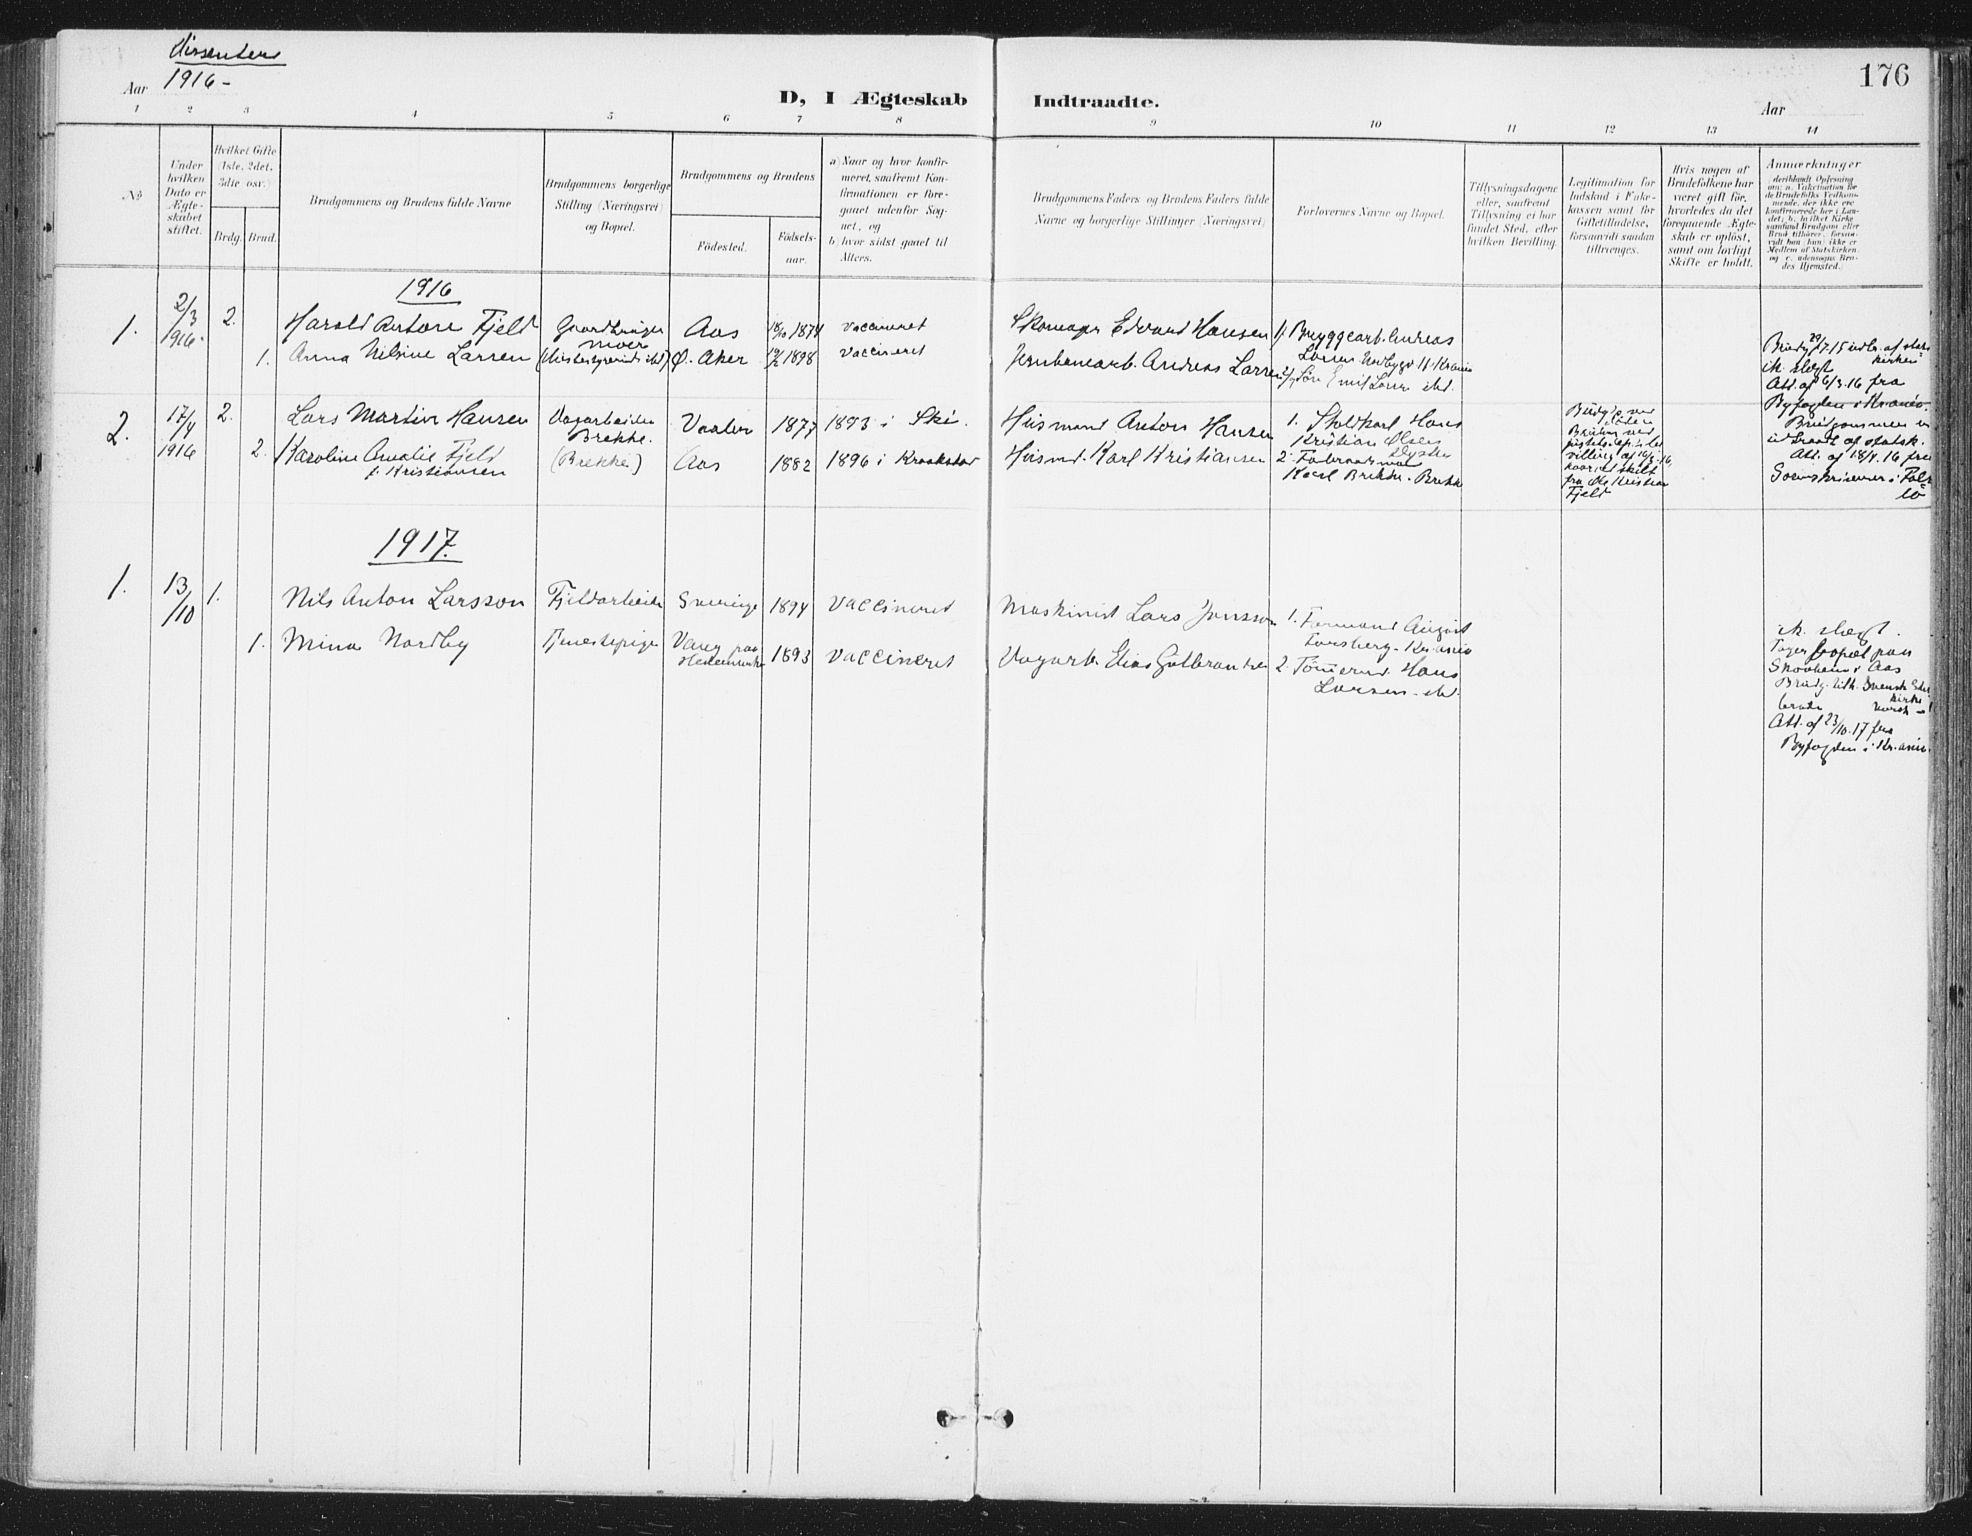 SAO, Ås prestekontor Kirkebøker, F/Fa/L0010: Parish register (official) no. I 10, 1900-1918, p. 176